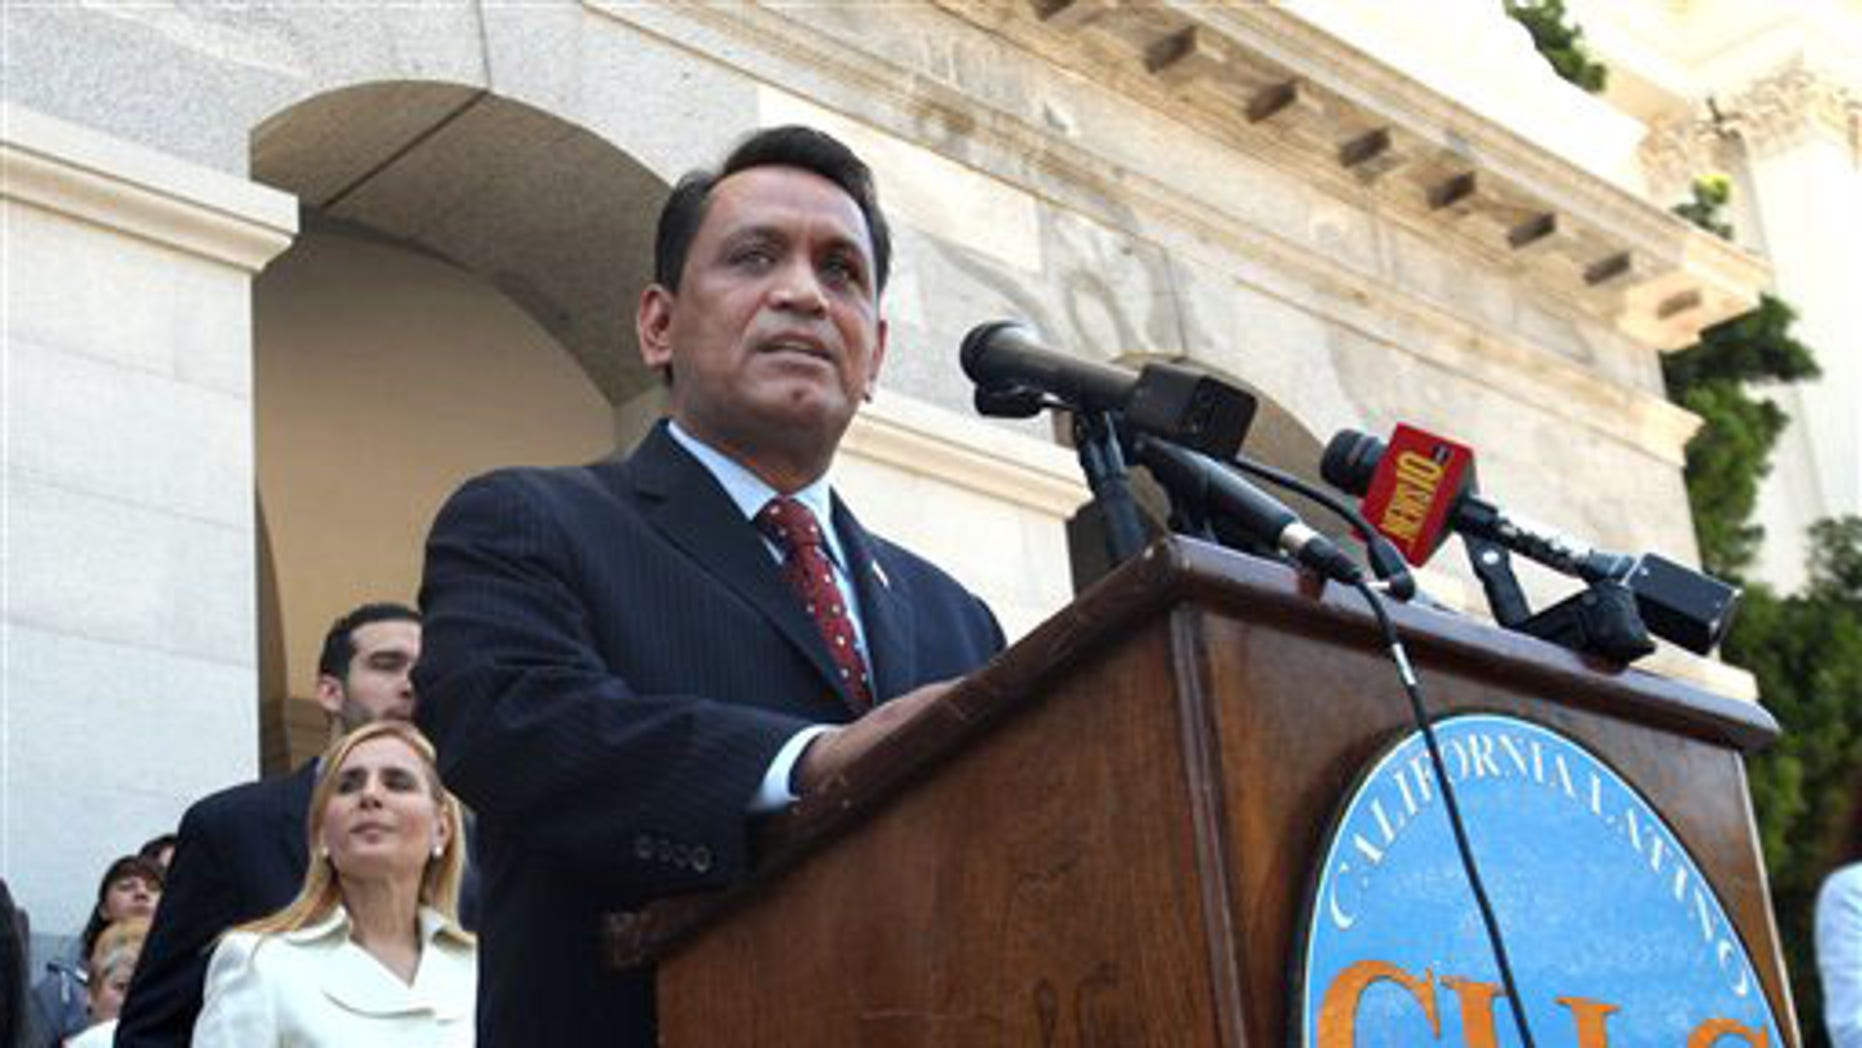 June 23, 2010: State Sen. Gil Cedillo, D-Los Angeles, calls on lawmakers to approve his proposed resolution calling on California to begin an economic boycott of Arizona over its controversial immigration law, at the Capitol in Sacramento, Calif. (AP)